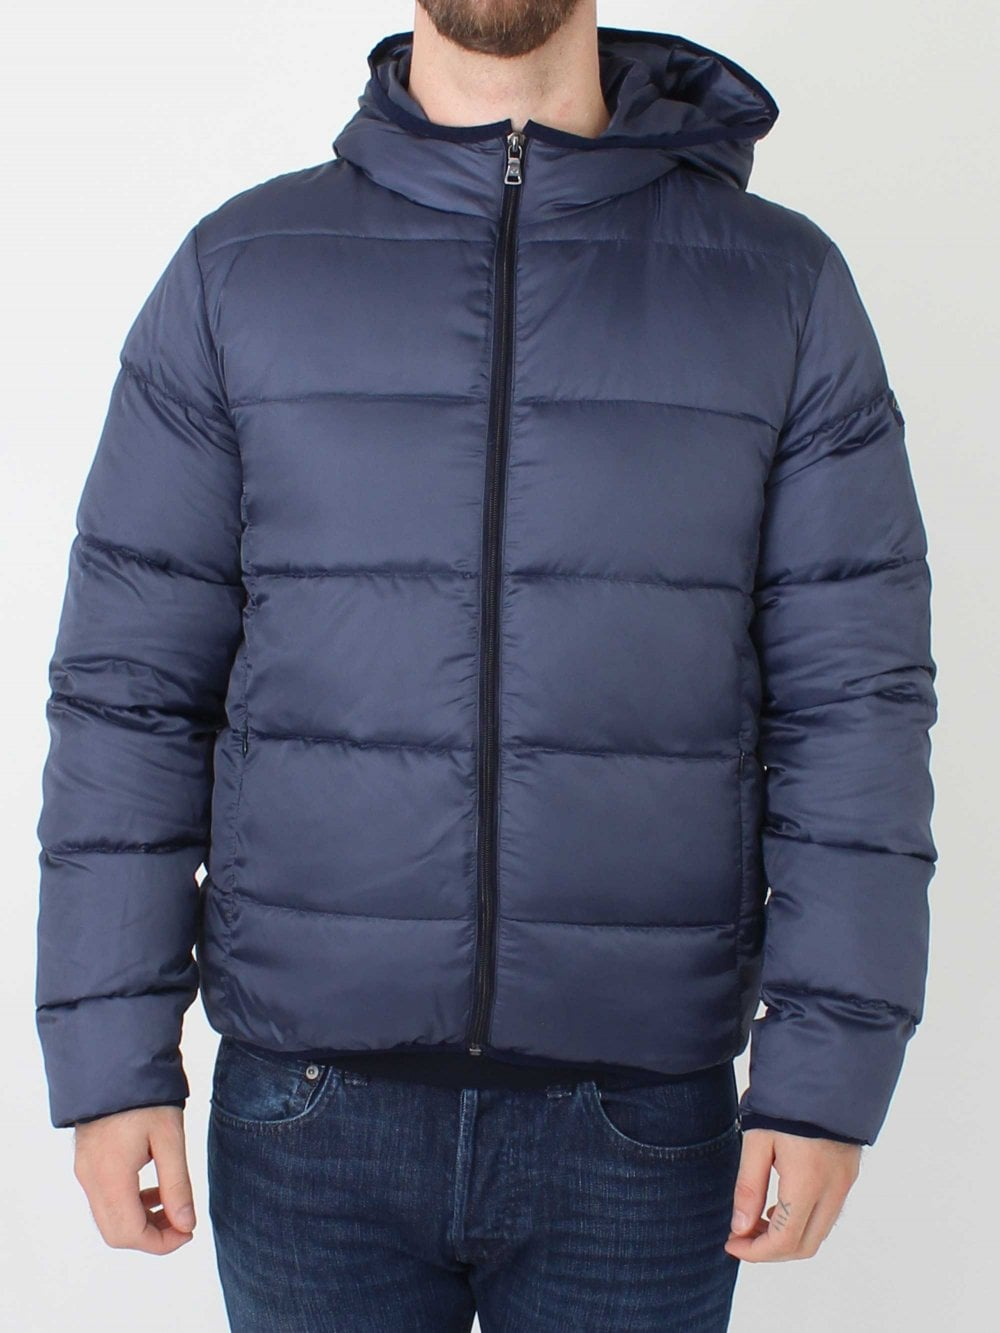 700 Fill Power Down Jacket